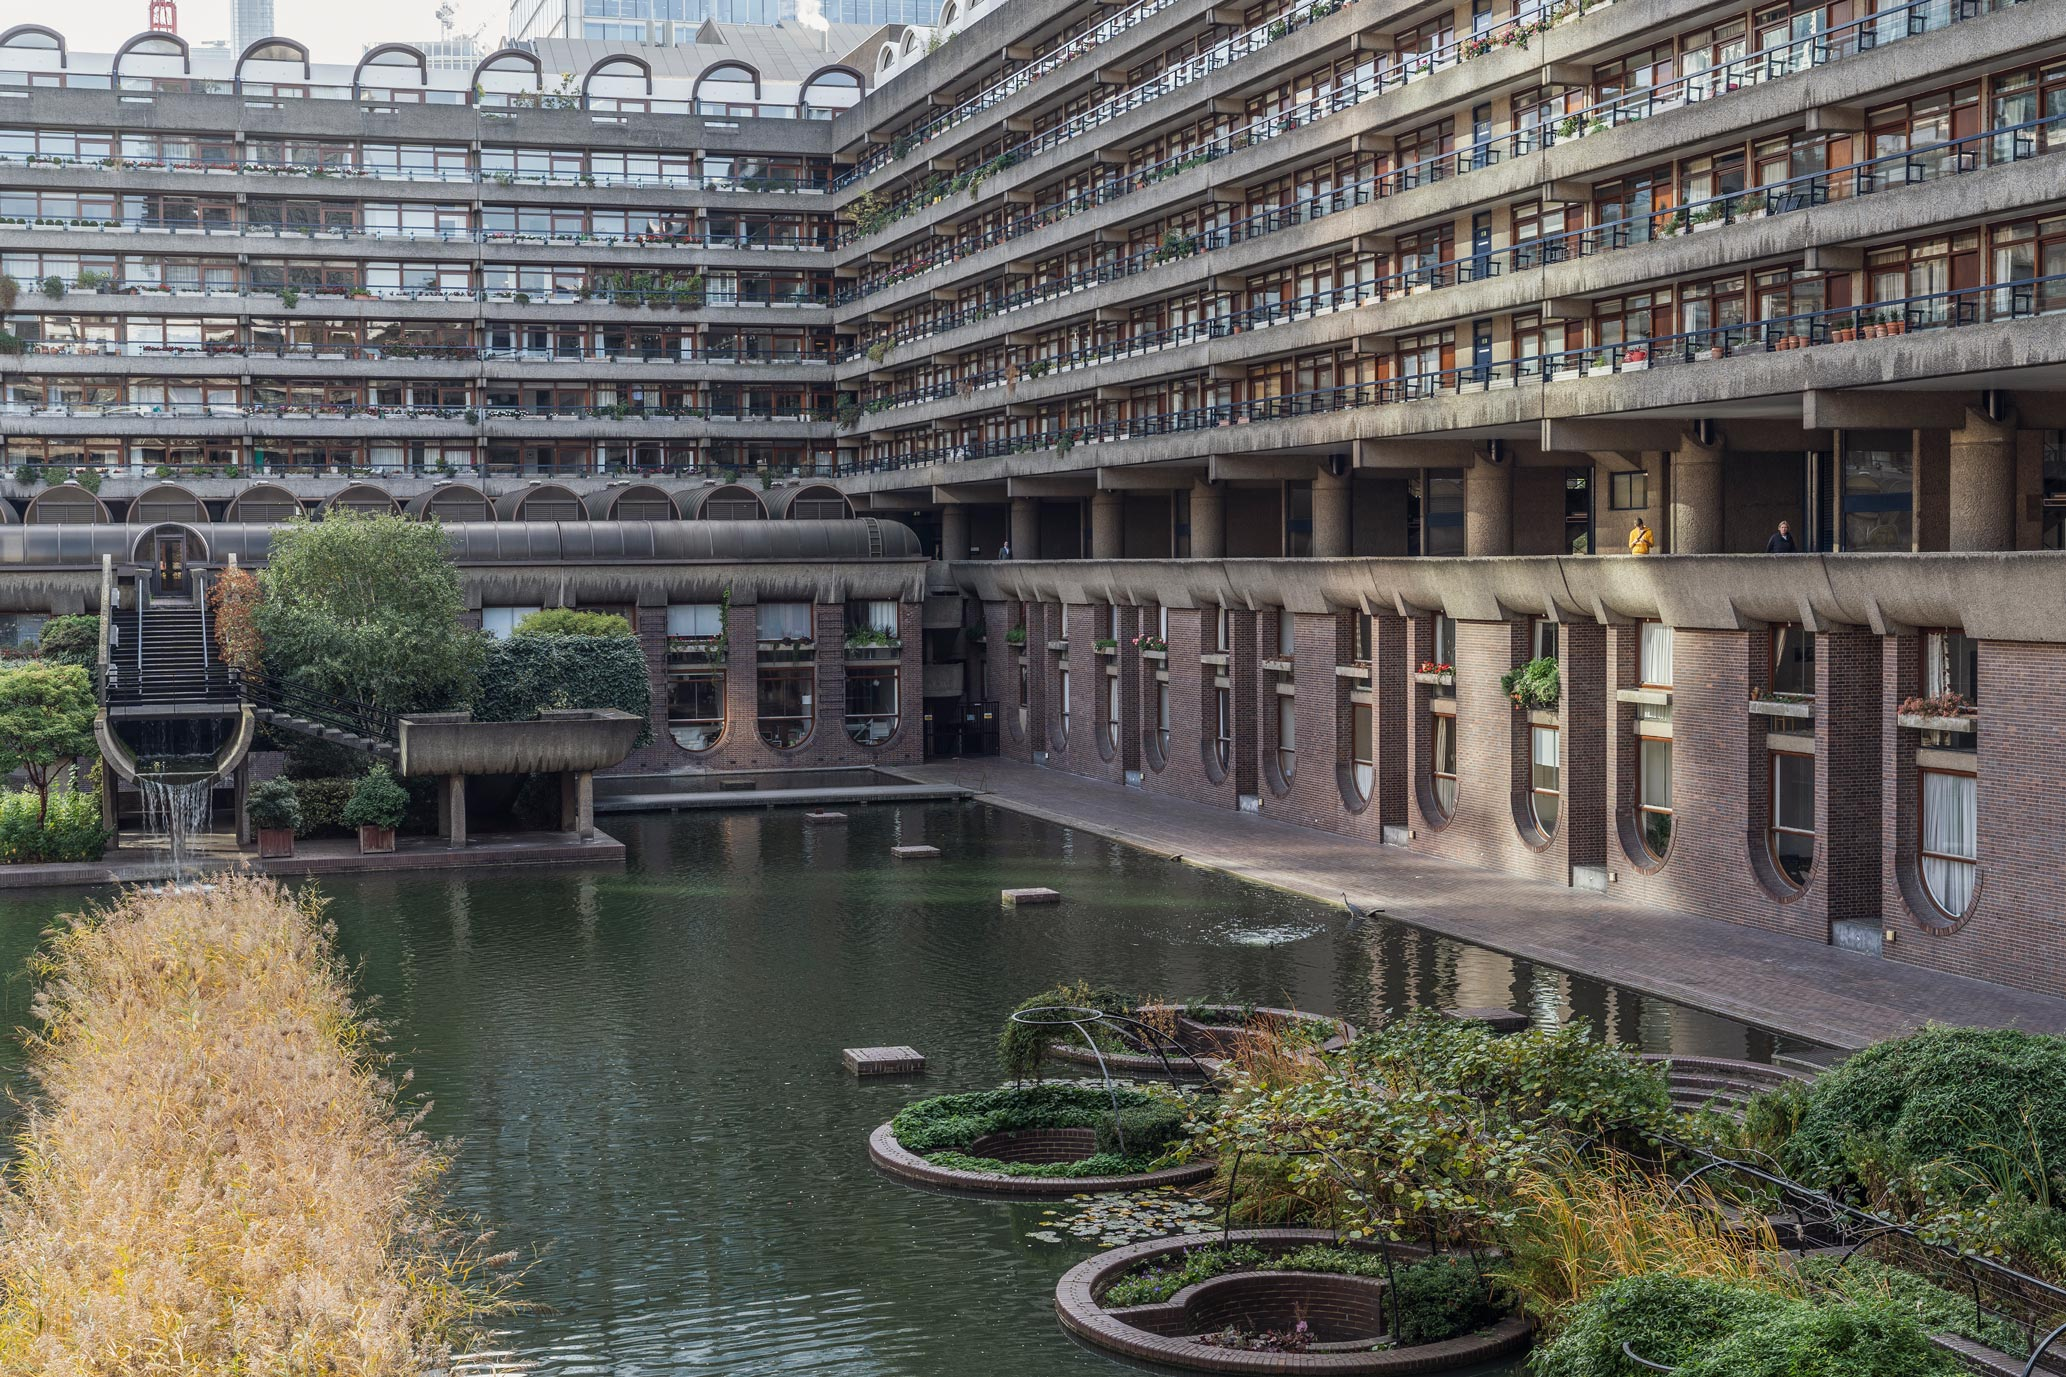 Barbican Center